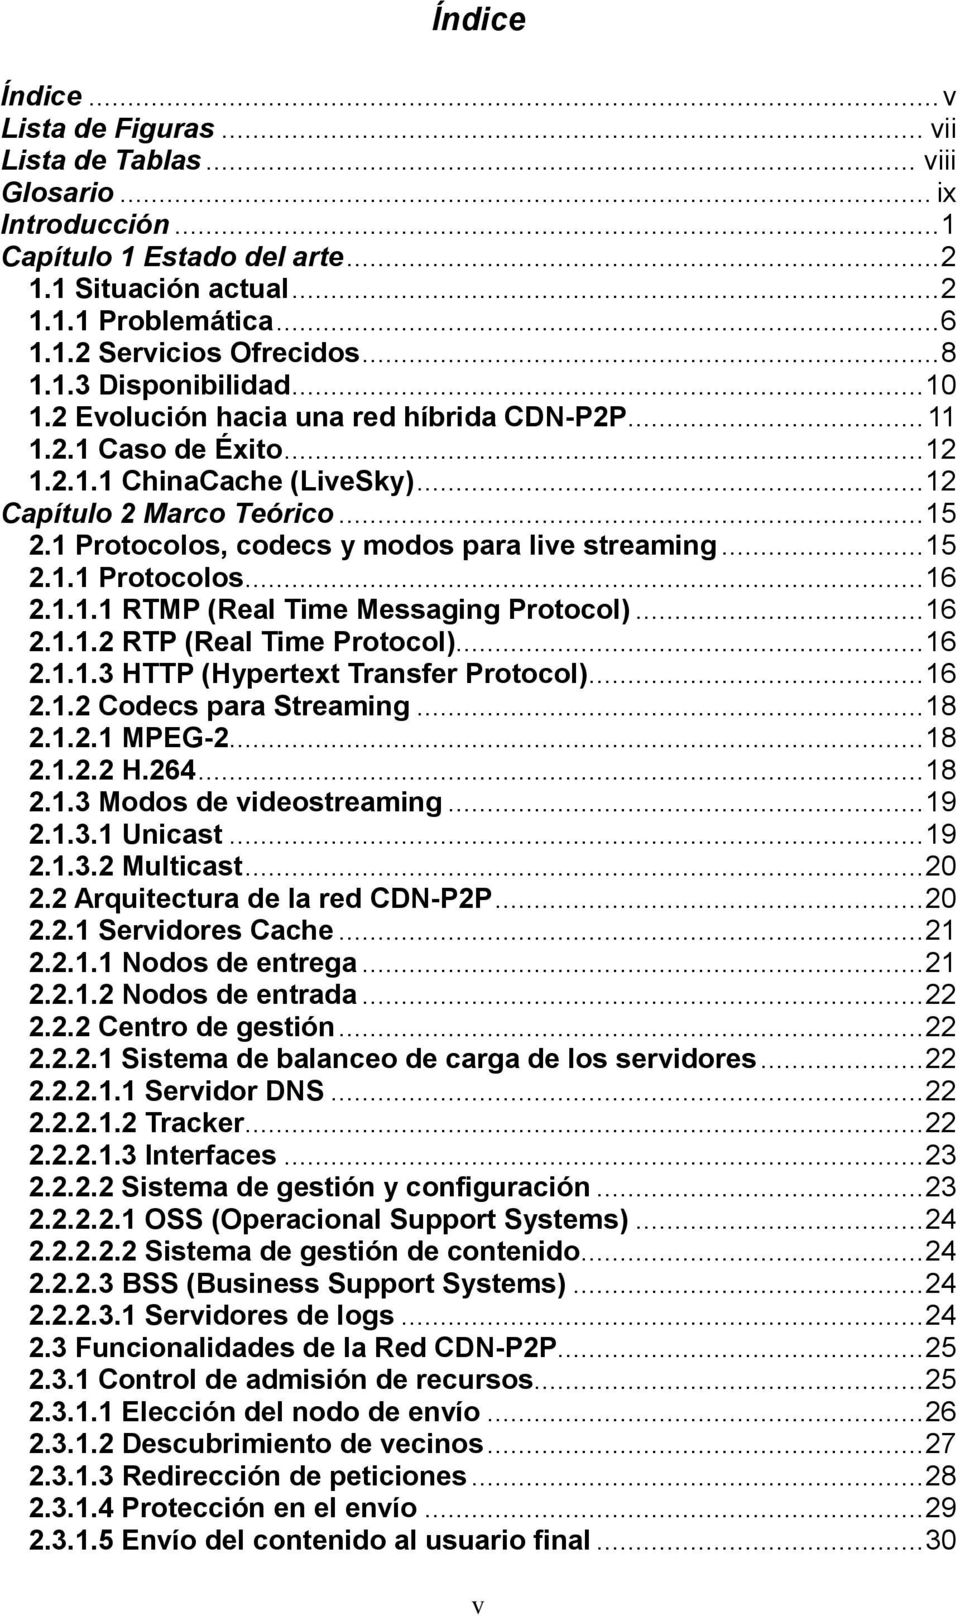 1 Protocolos, codecs y modos para live streaming... 15 2.1.1 Protocolos... 16 2.1.1.1 RTMP (Real Time Messaging Protocol)... 16 2.1.1.2 RTP (Real Time Protocol)... 16 2.1.1.3 HTTP (Hypertext Transfer Protocol).